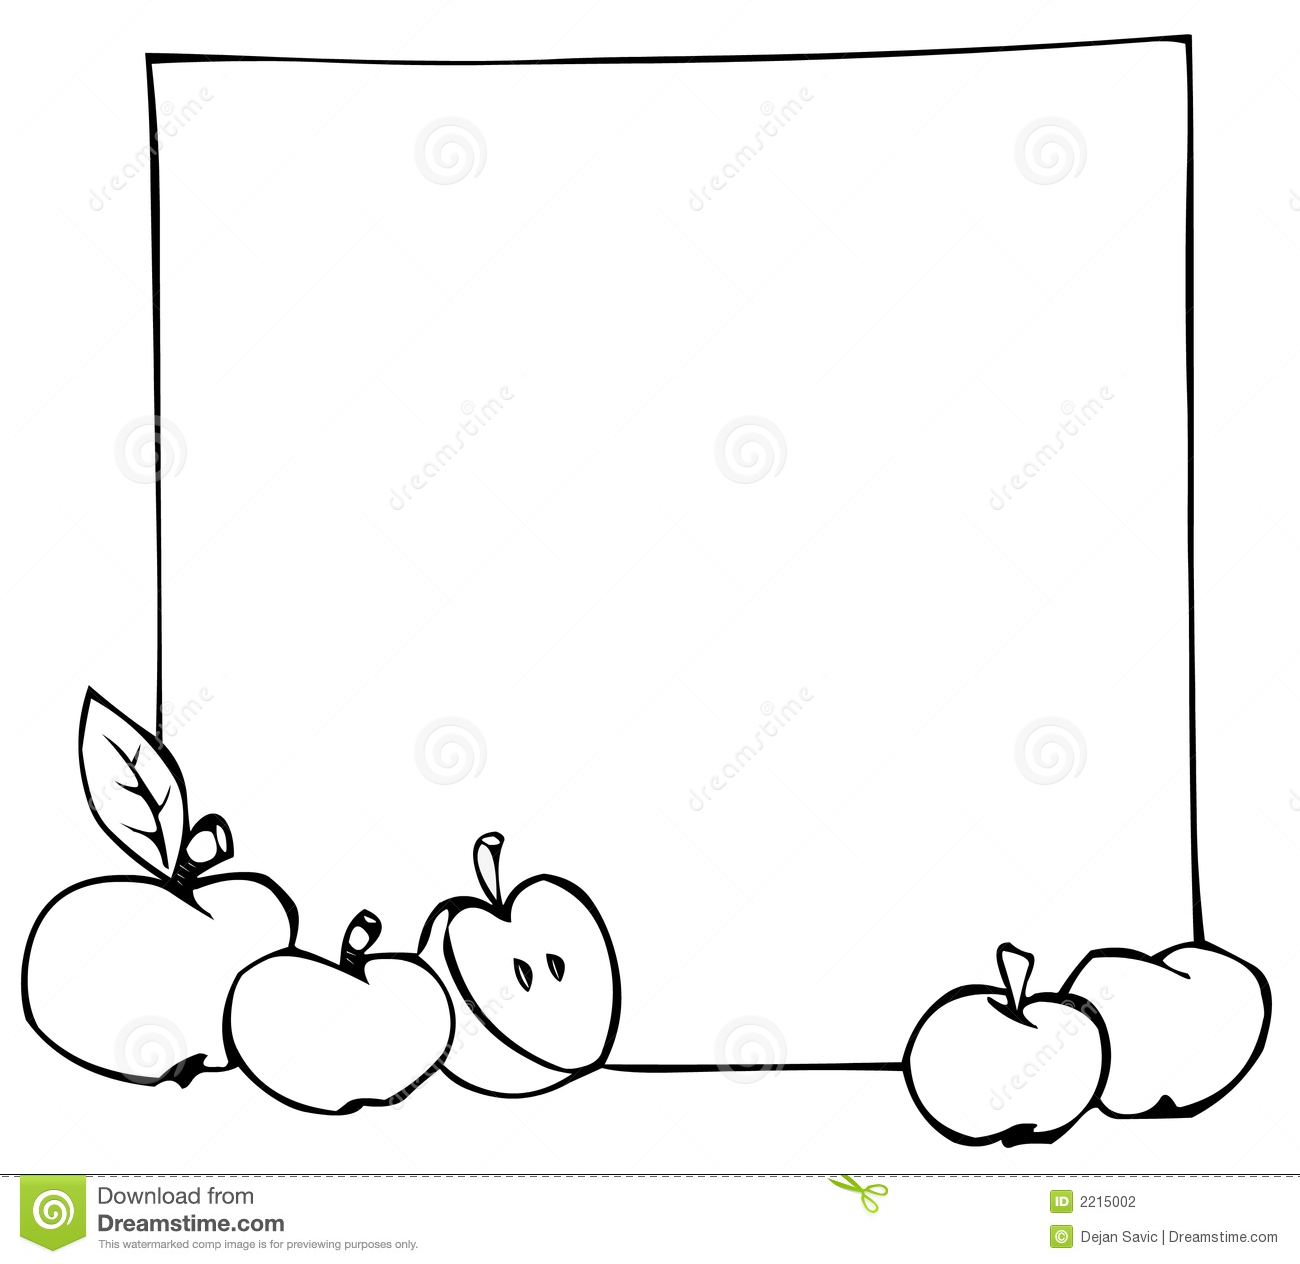 Apples and banner